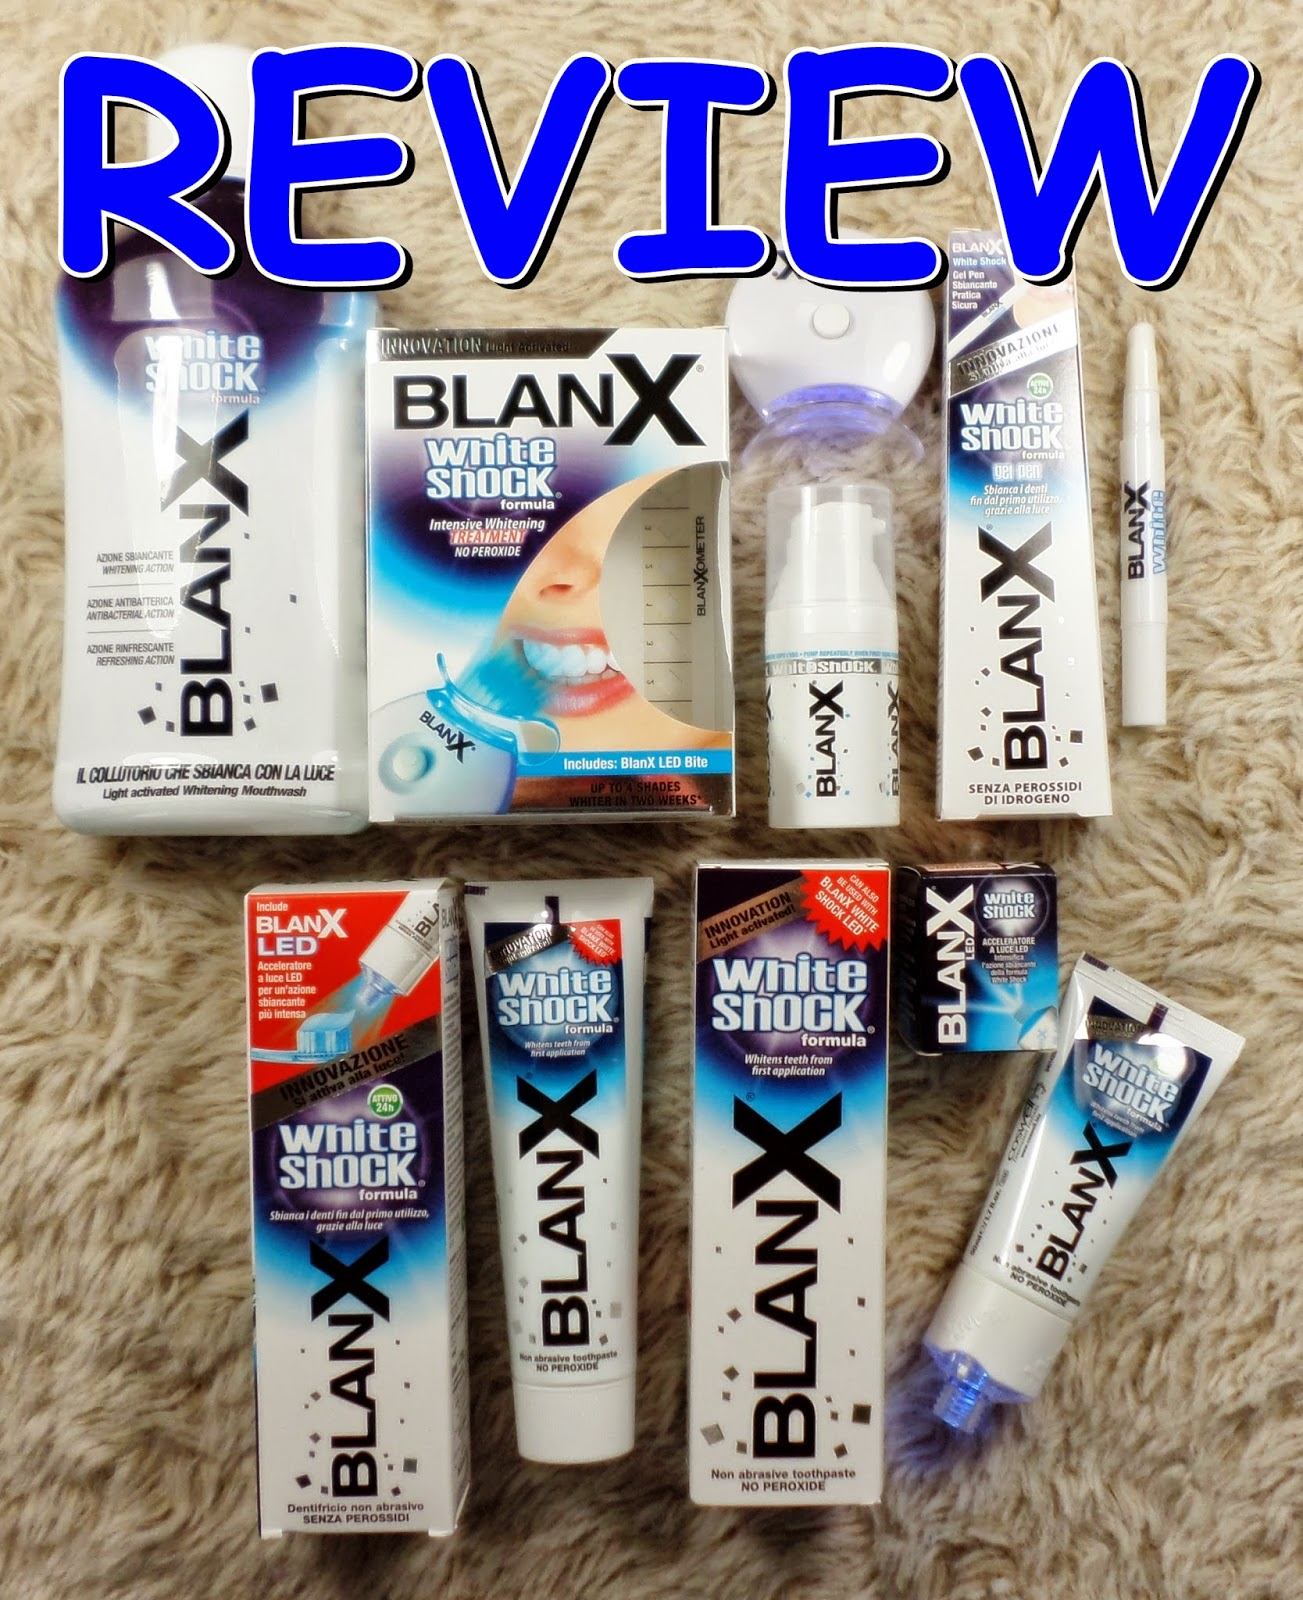 BlanX White Shock Review